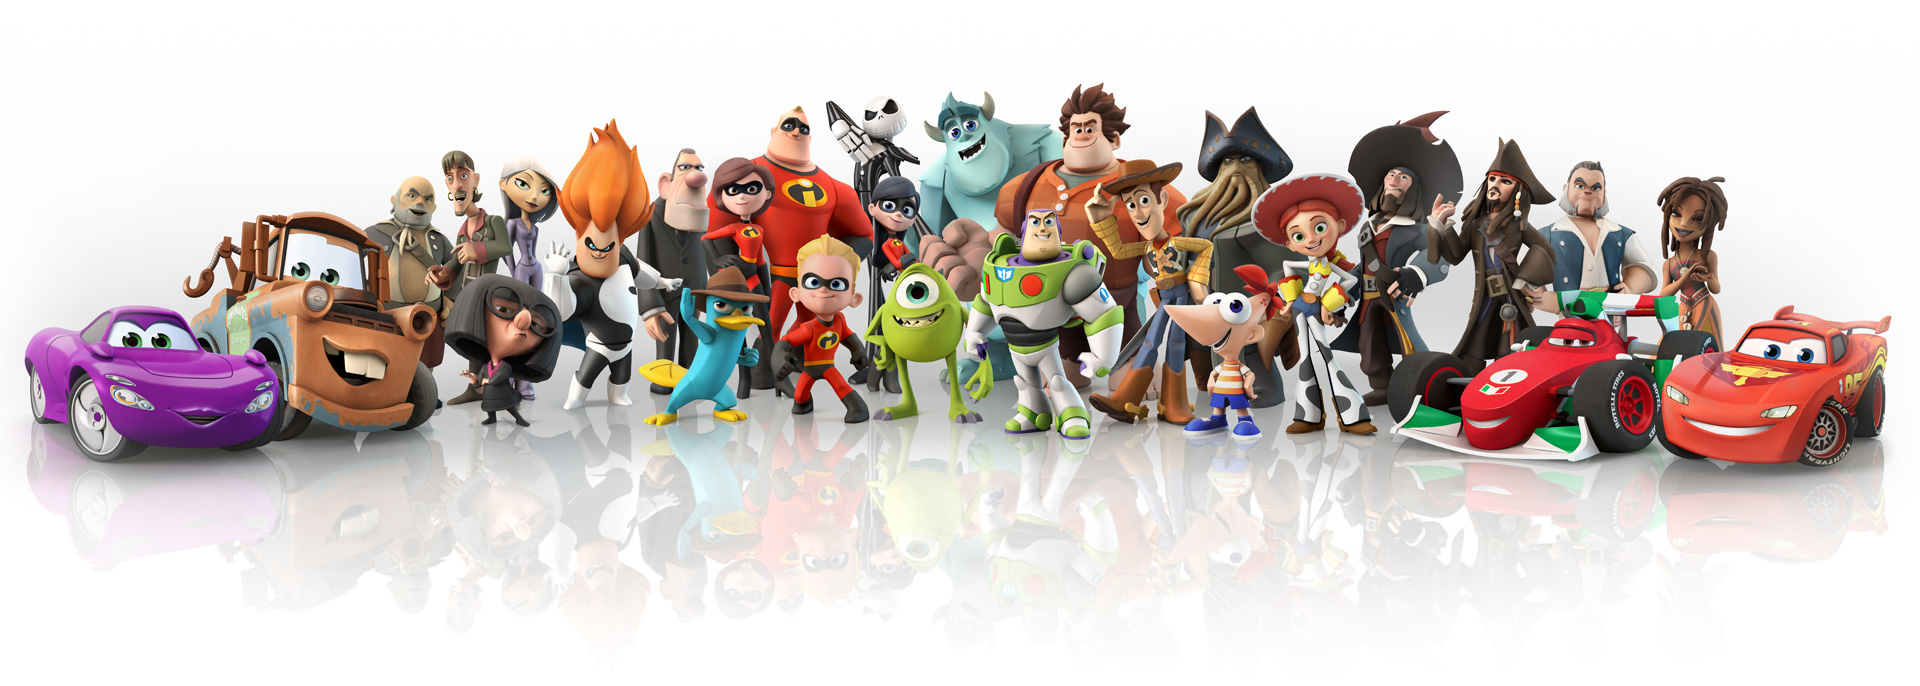 10 Ways to Change Company Culture and Go To Infinity and Beyond!